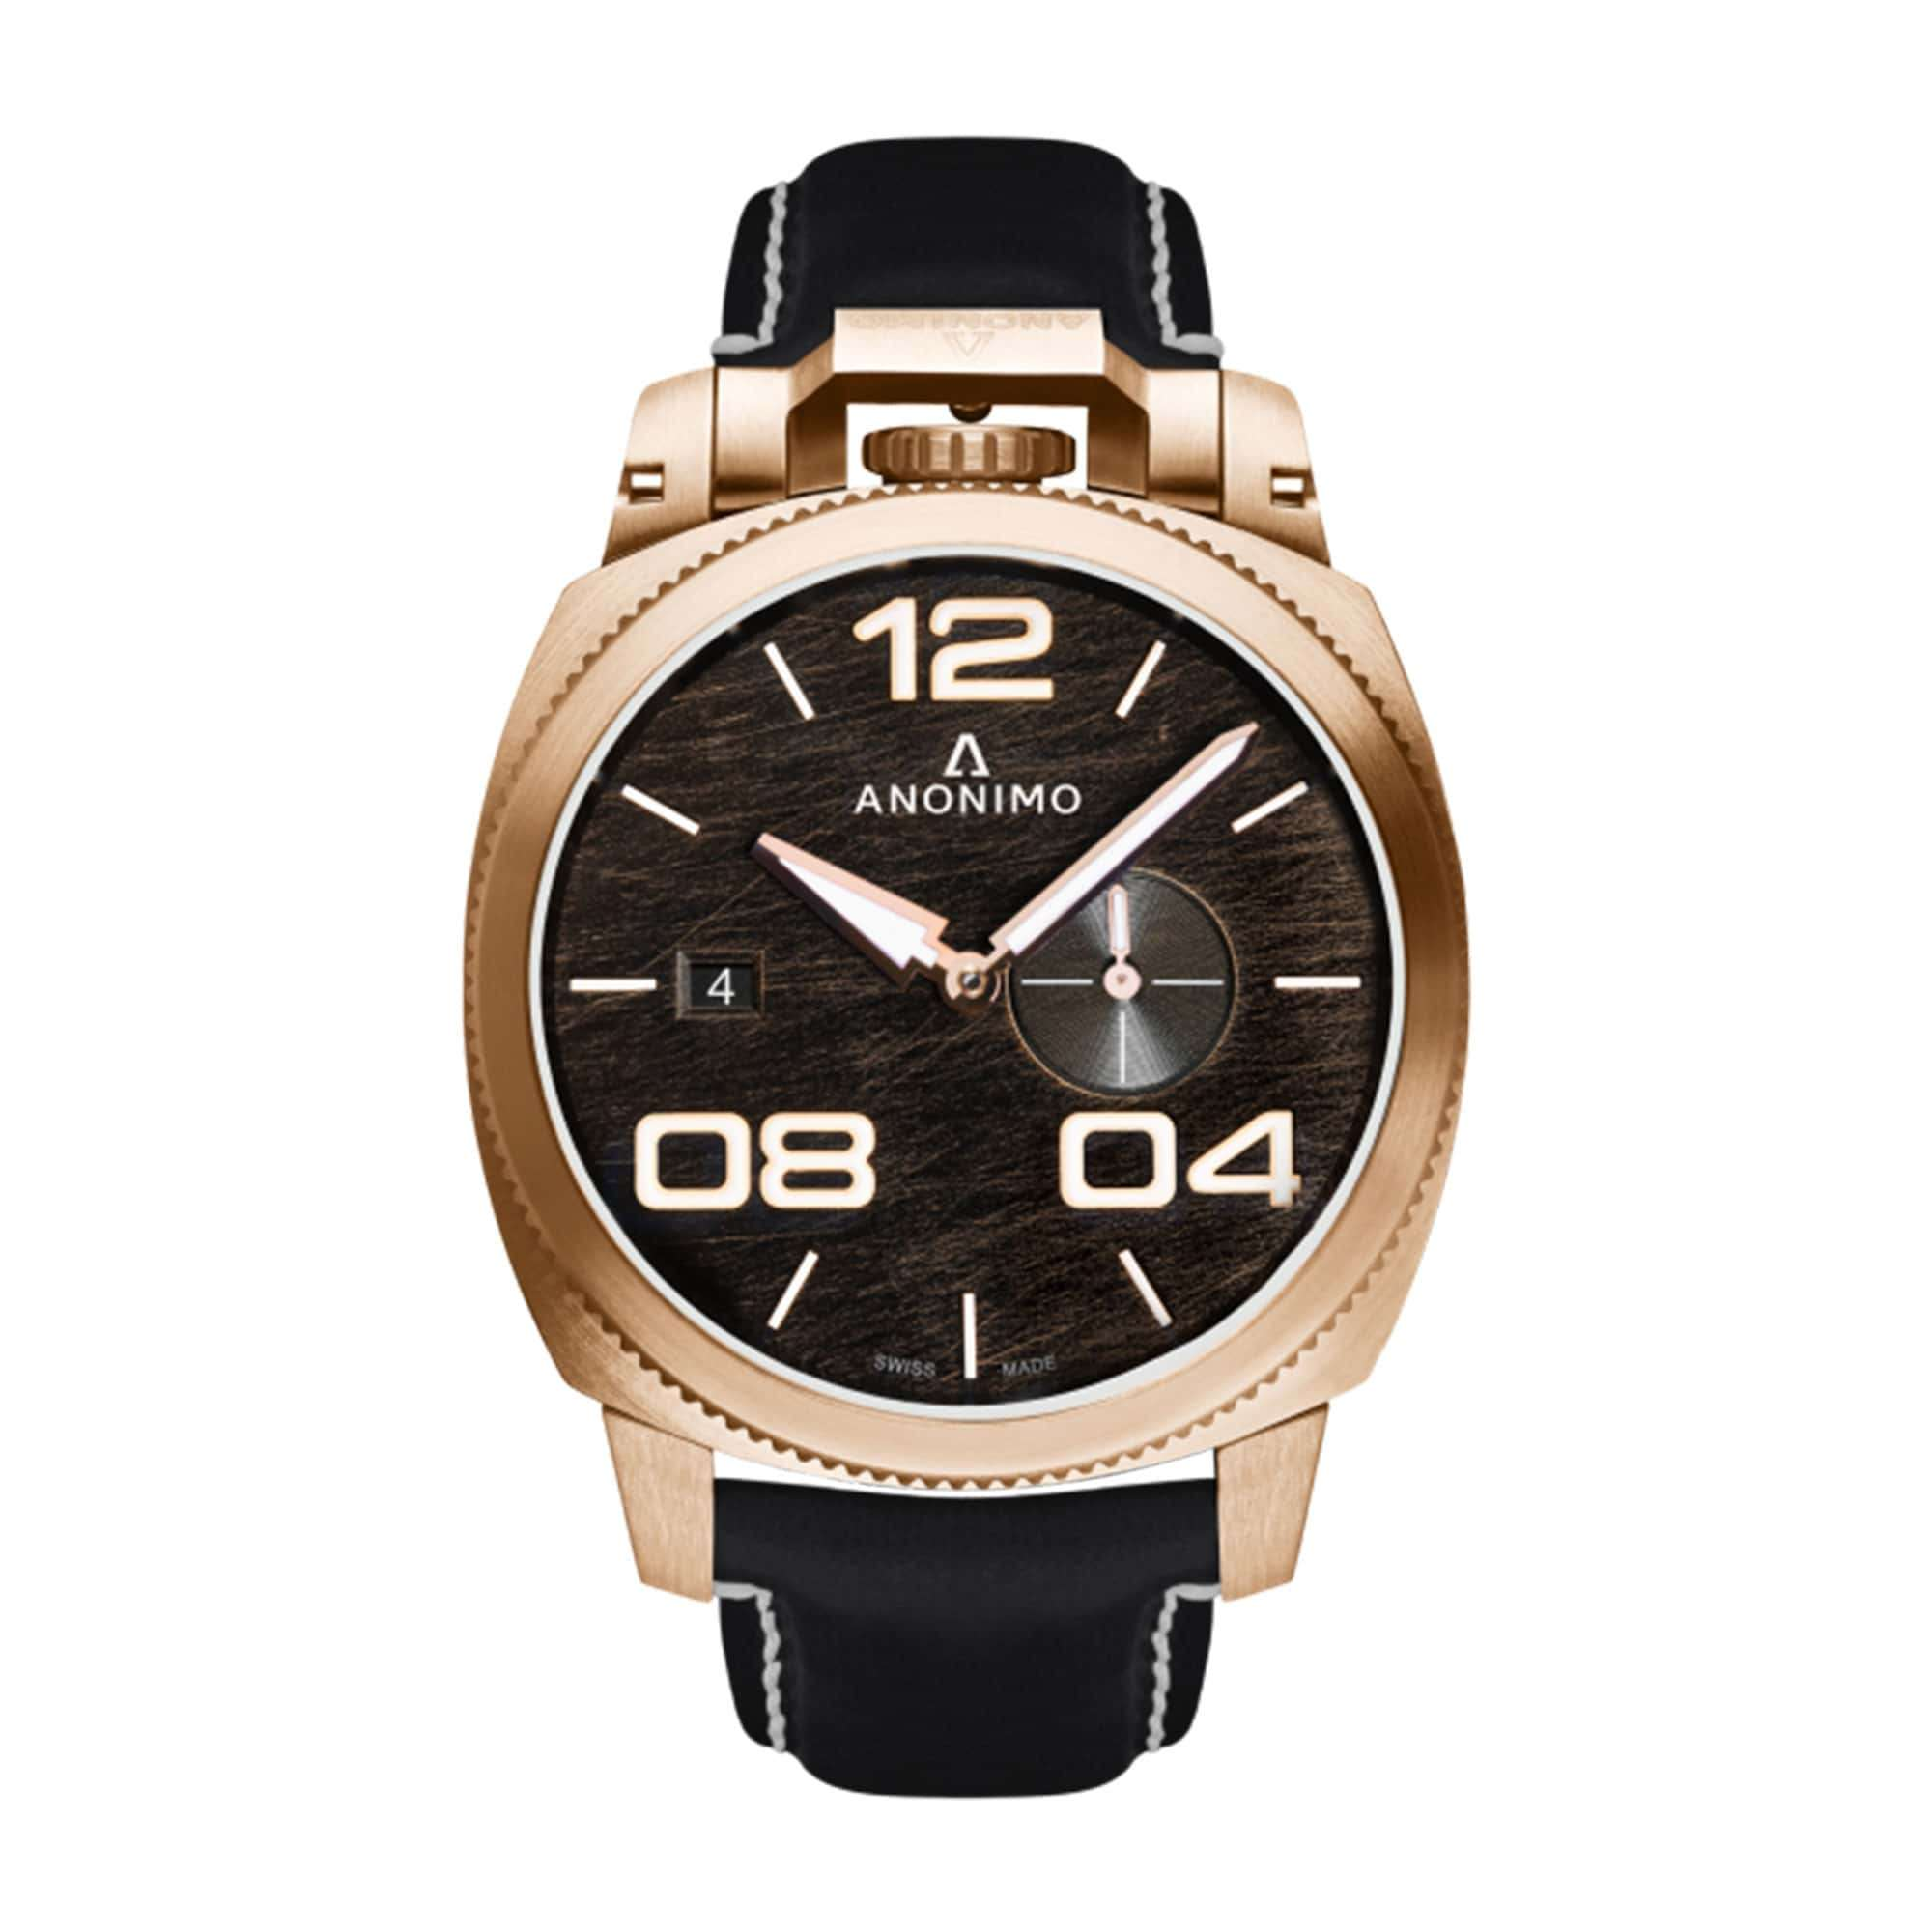 Anonimo Militare Automatic Bronze AM-1020.04.001.A01 – Swiss Time